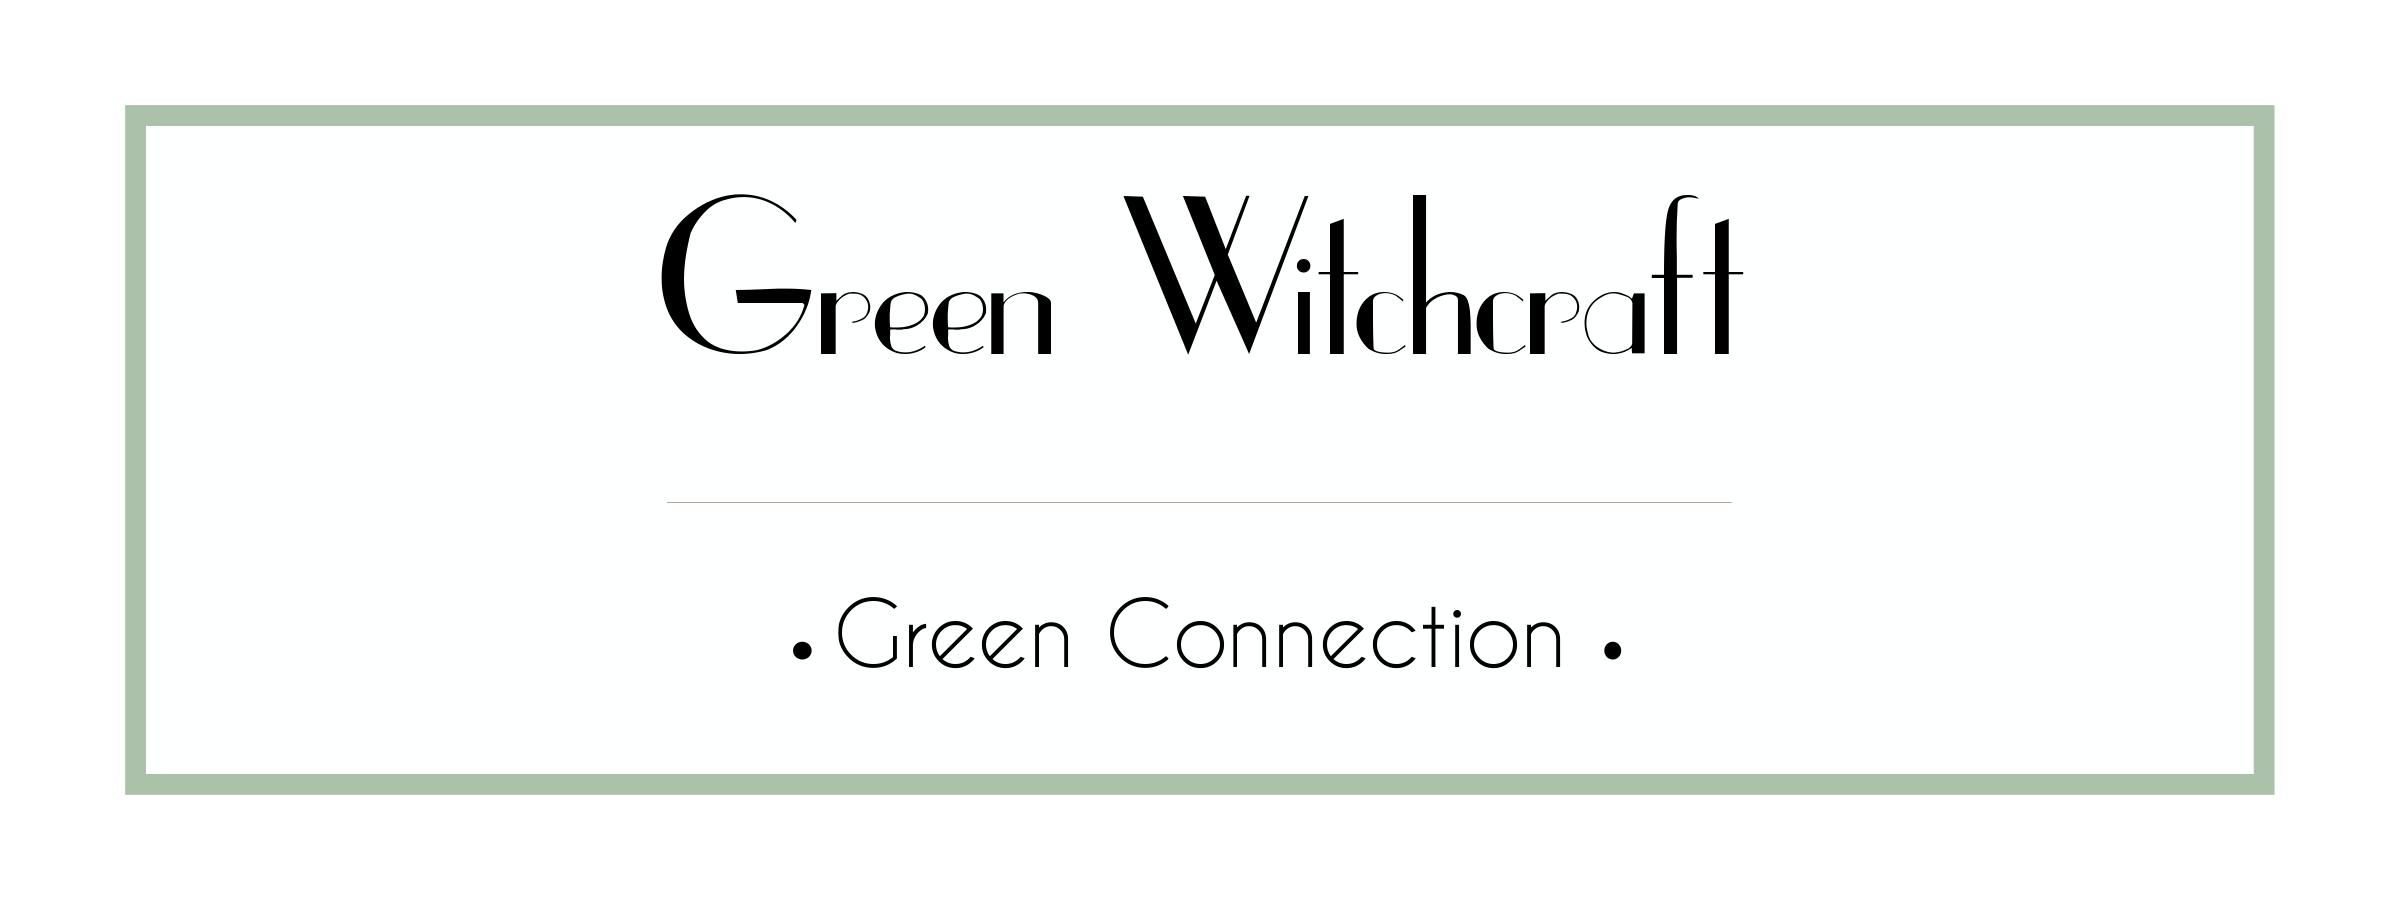 Green Witchcraft Course - Green Connection